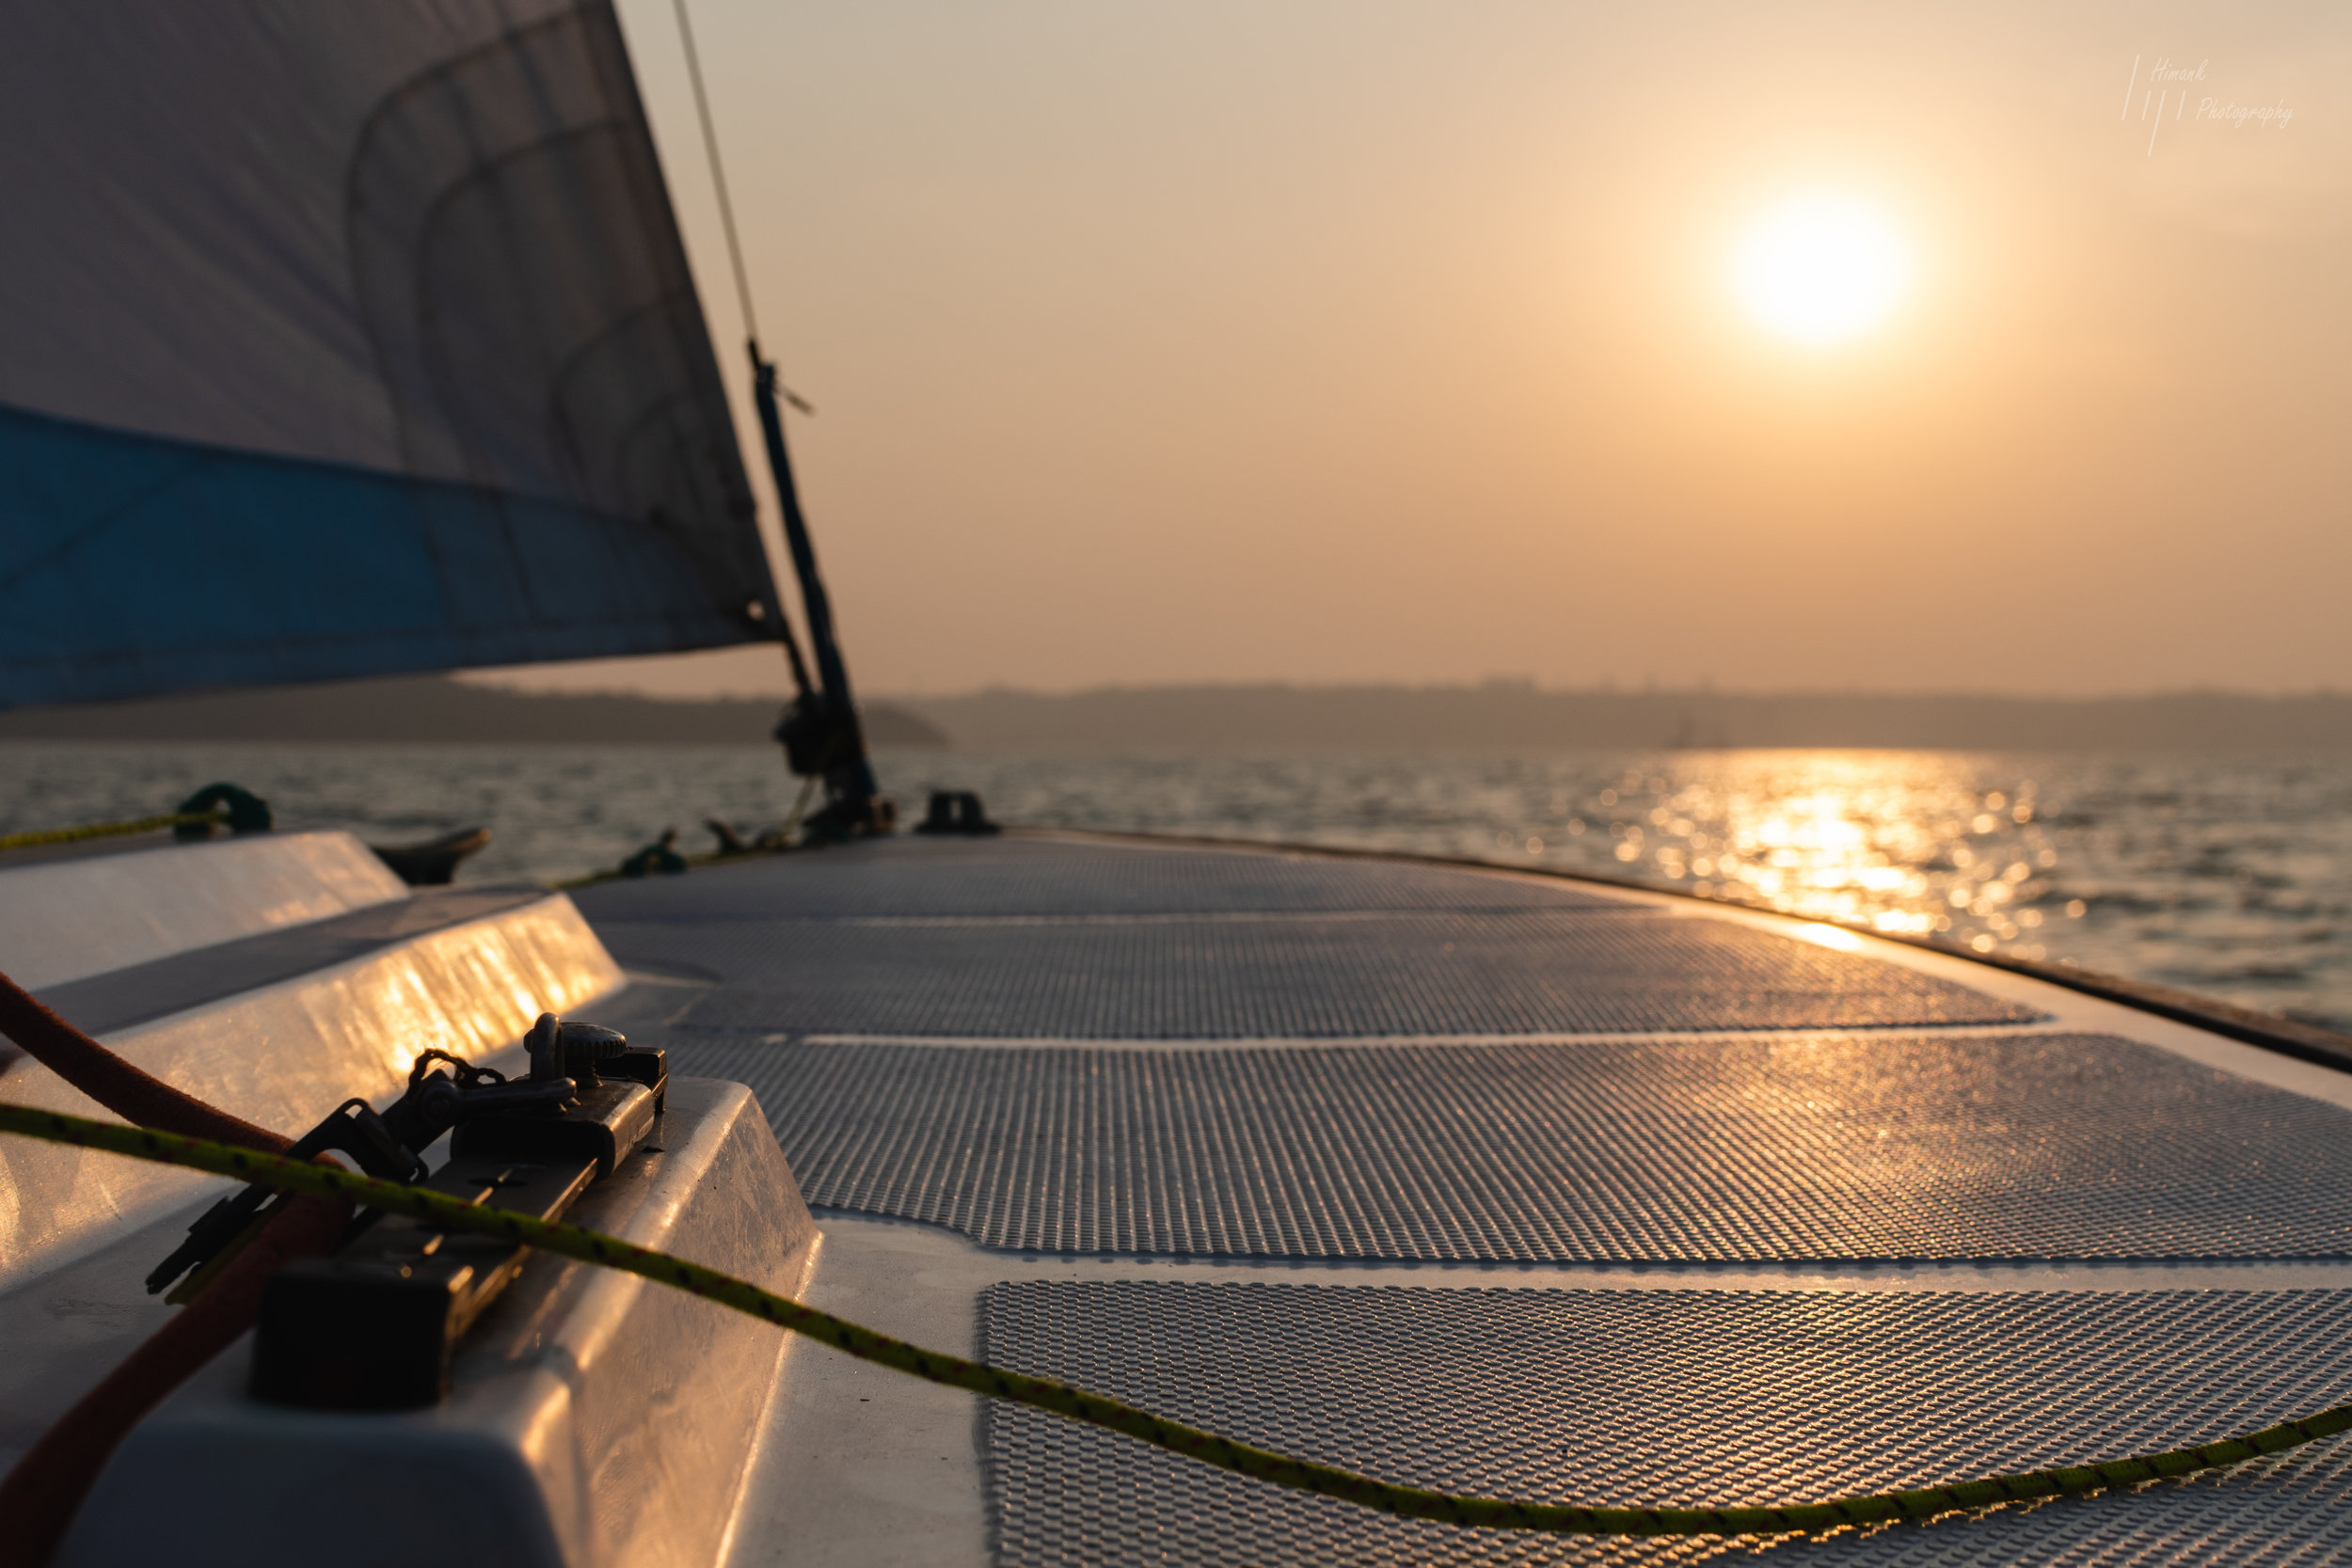 ONE HOUR SAIL | INR 1750/- PER PERSON - A great way to experience sailing is to sign up for an hours sail from Hollant Beach. Chase the sunset shall we? Requires minimum 2 people. Suitable for 7years & above. Max 5 per boat